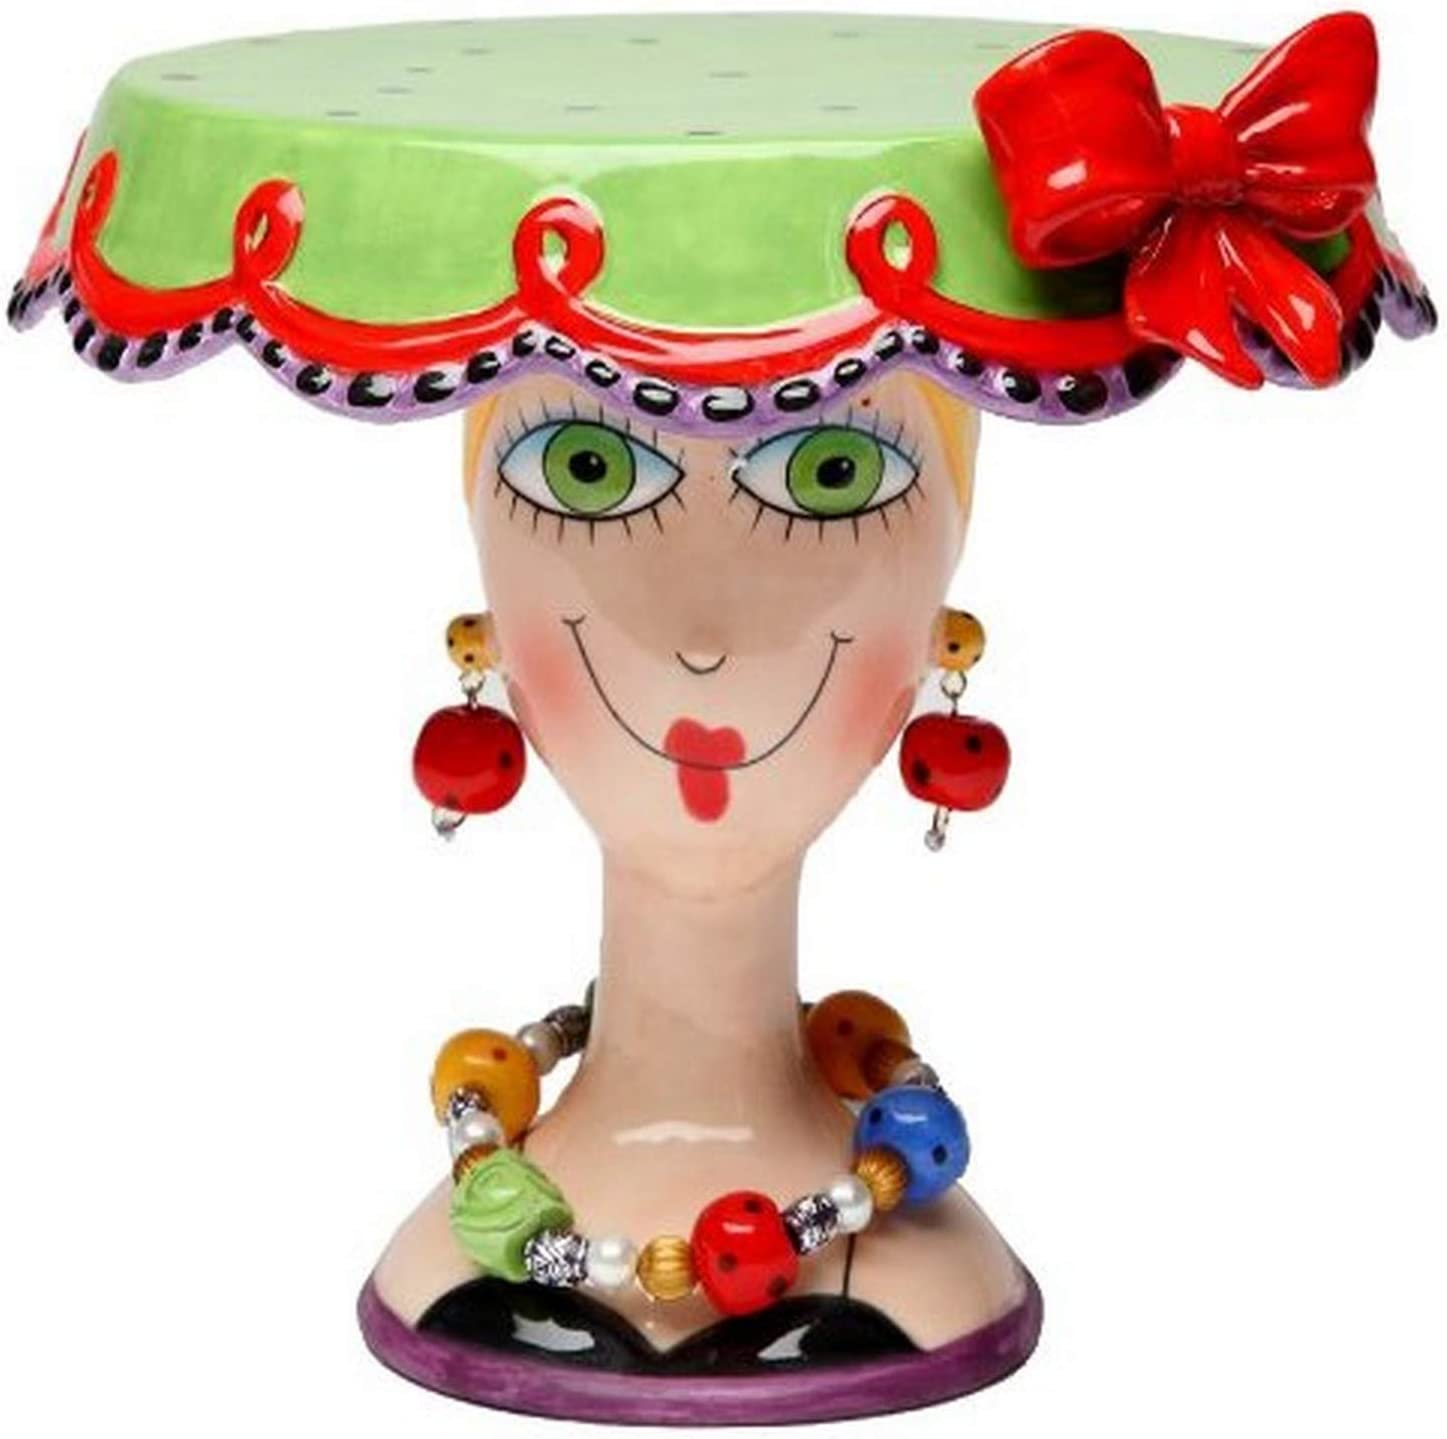 Appletree 6-1/2-Inch Sugar High Social by Babs Ceramic Cake Stand